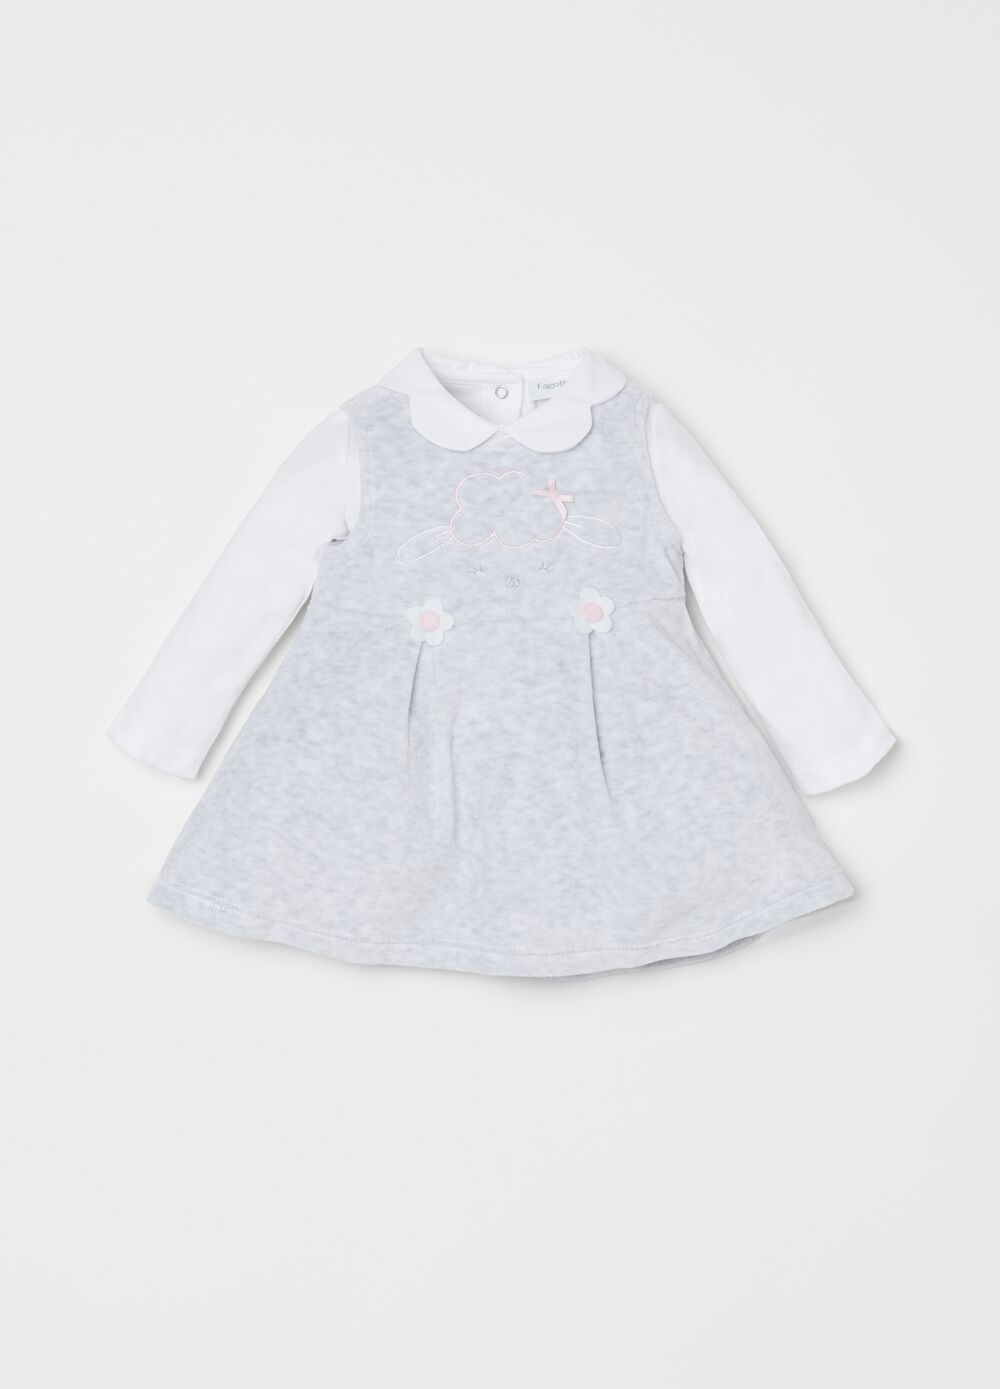 T-shirt and sleeveless dress outfit